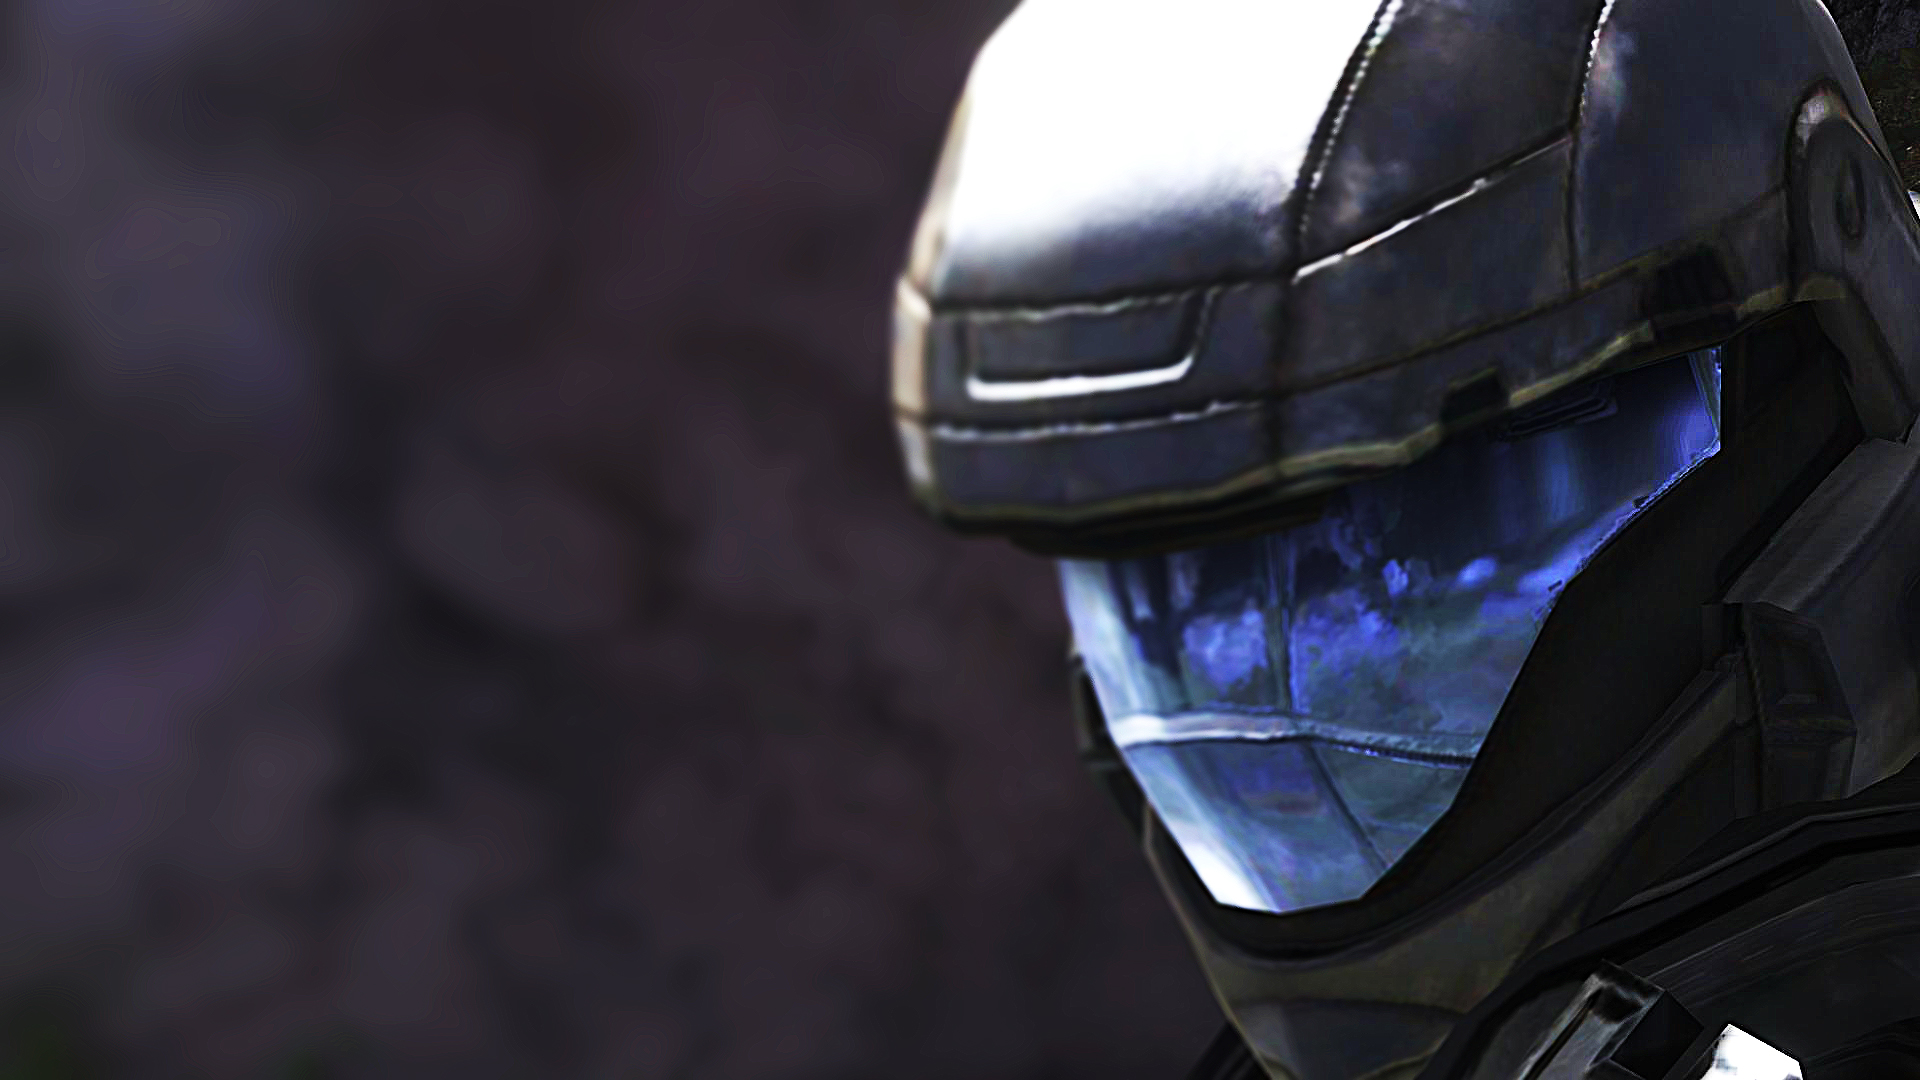 halo wallpaper cinematic halocinematic images wallpapers 1920x1080